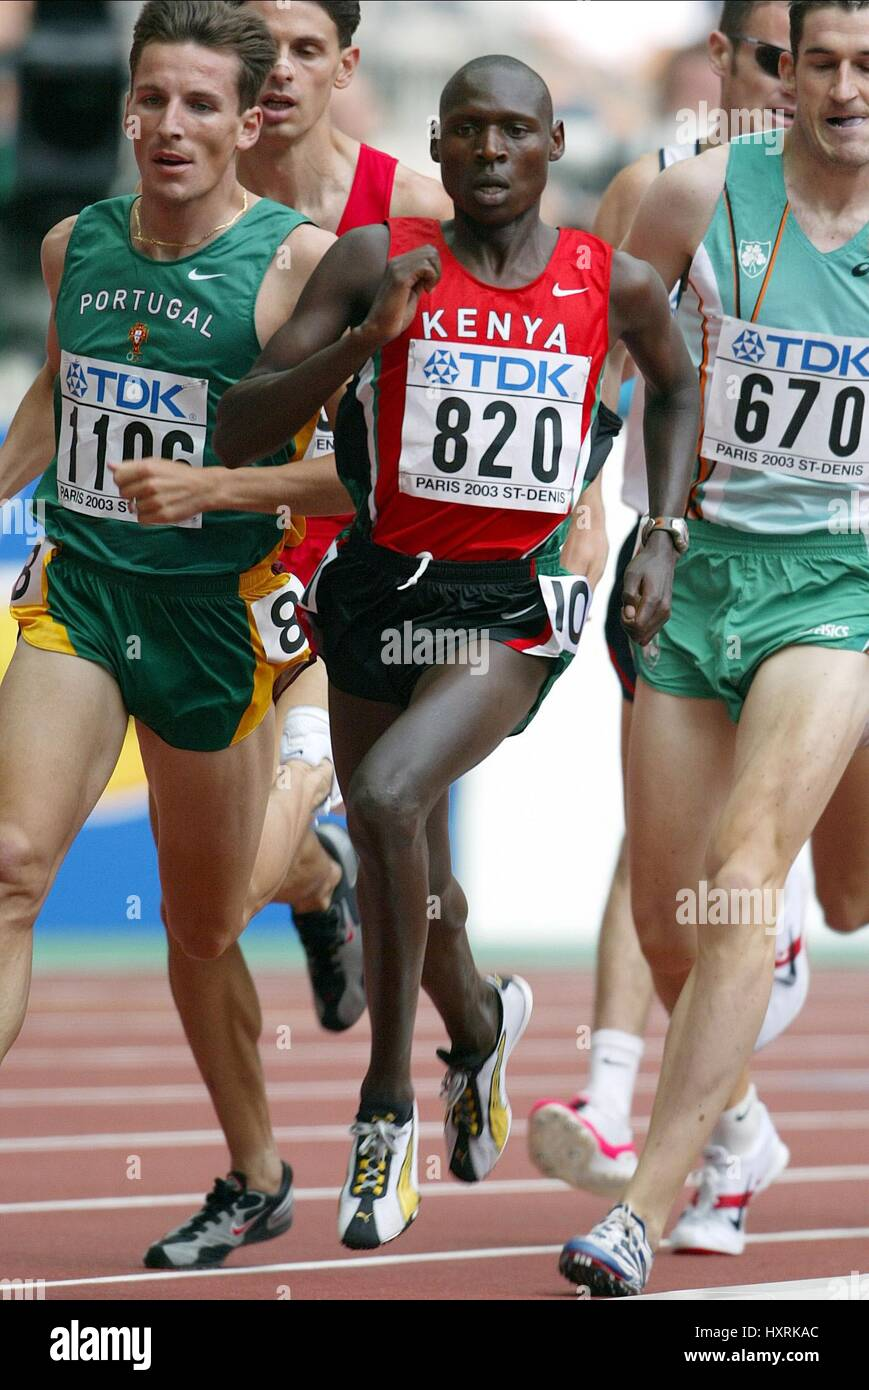 ISAAC SONGOK 1500 METRES STADE DE FRANCE ST DENIS PARIS FRANCE 23 August 2003 - Stock Image